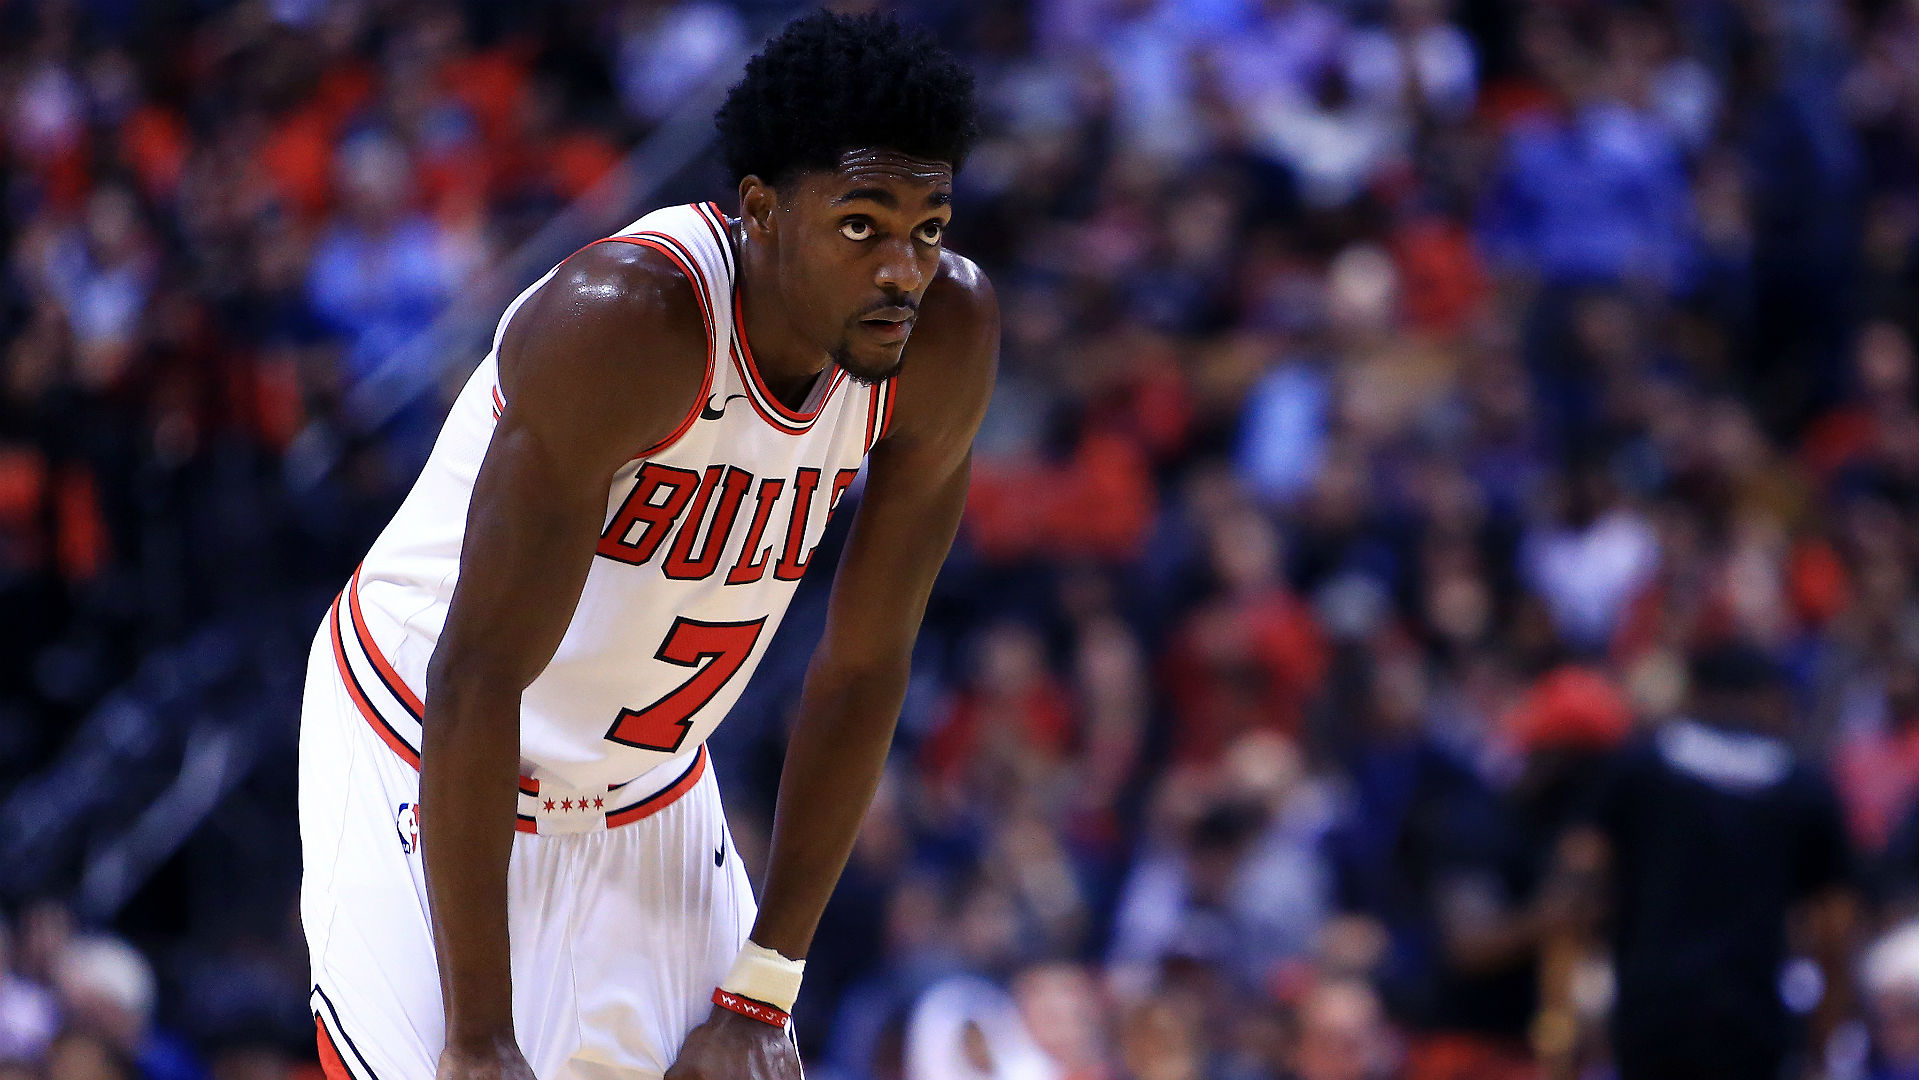 Bulls deal Justin Holiday to Grizzlies for Marshon Brooks, Wayne Selden Jr